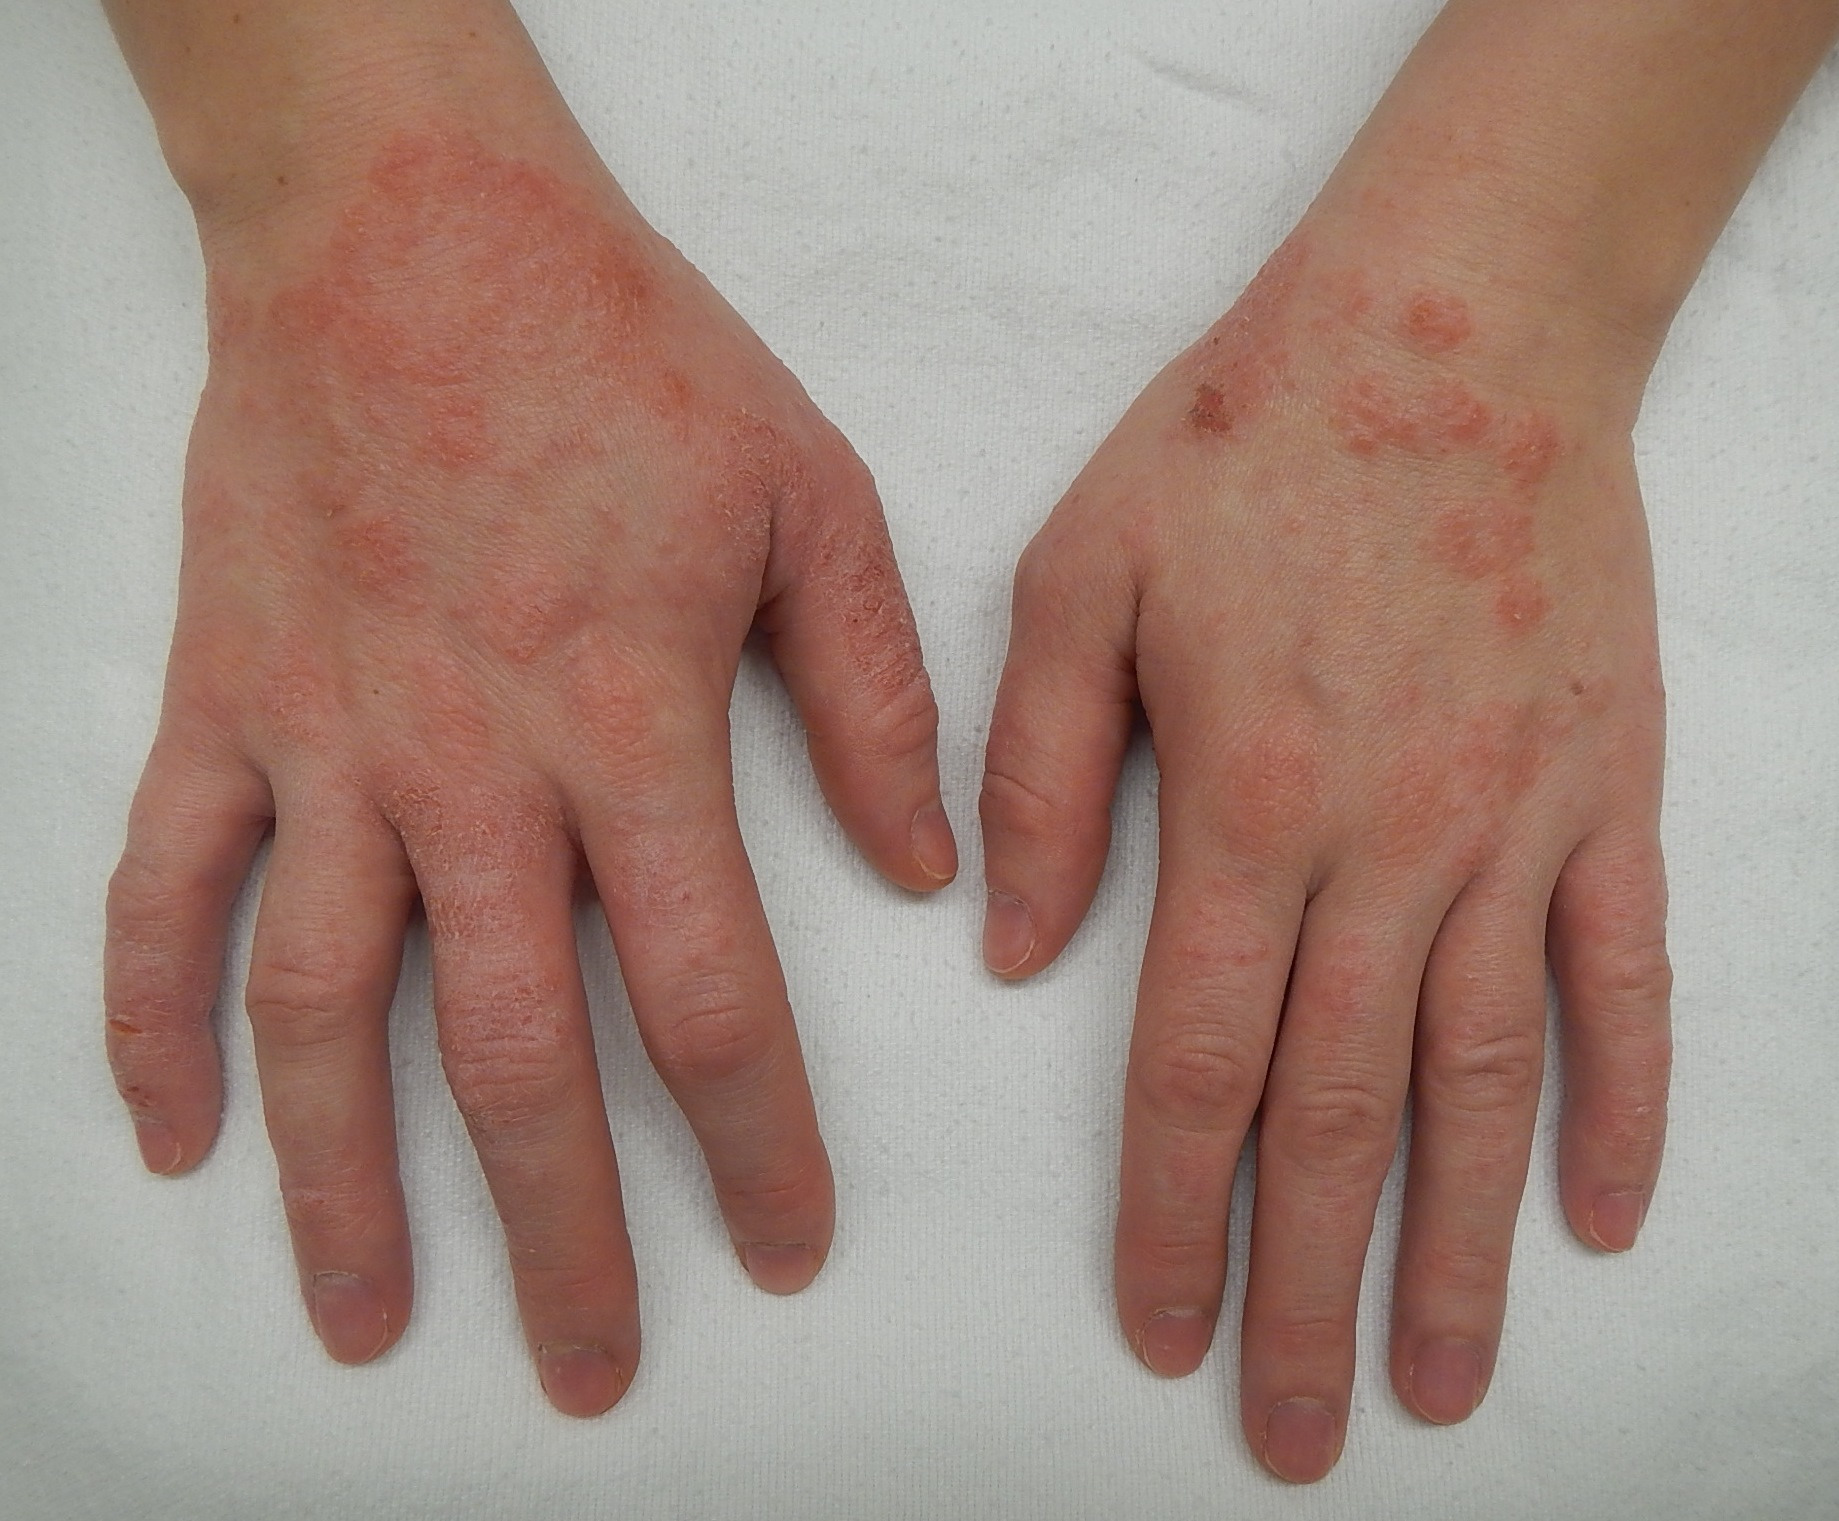 Chronic Cold Idiopathic Urticaria Hives Permanent Treatment